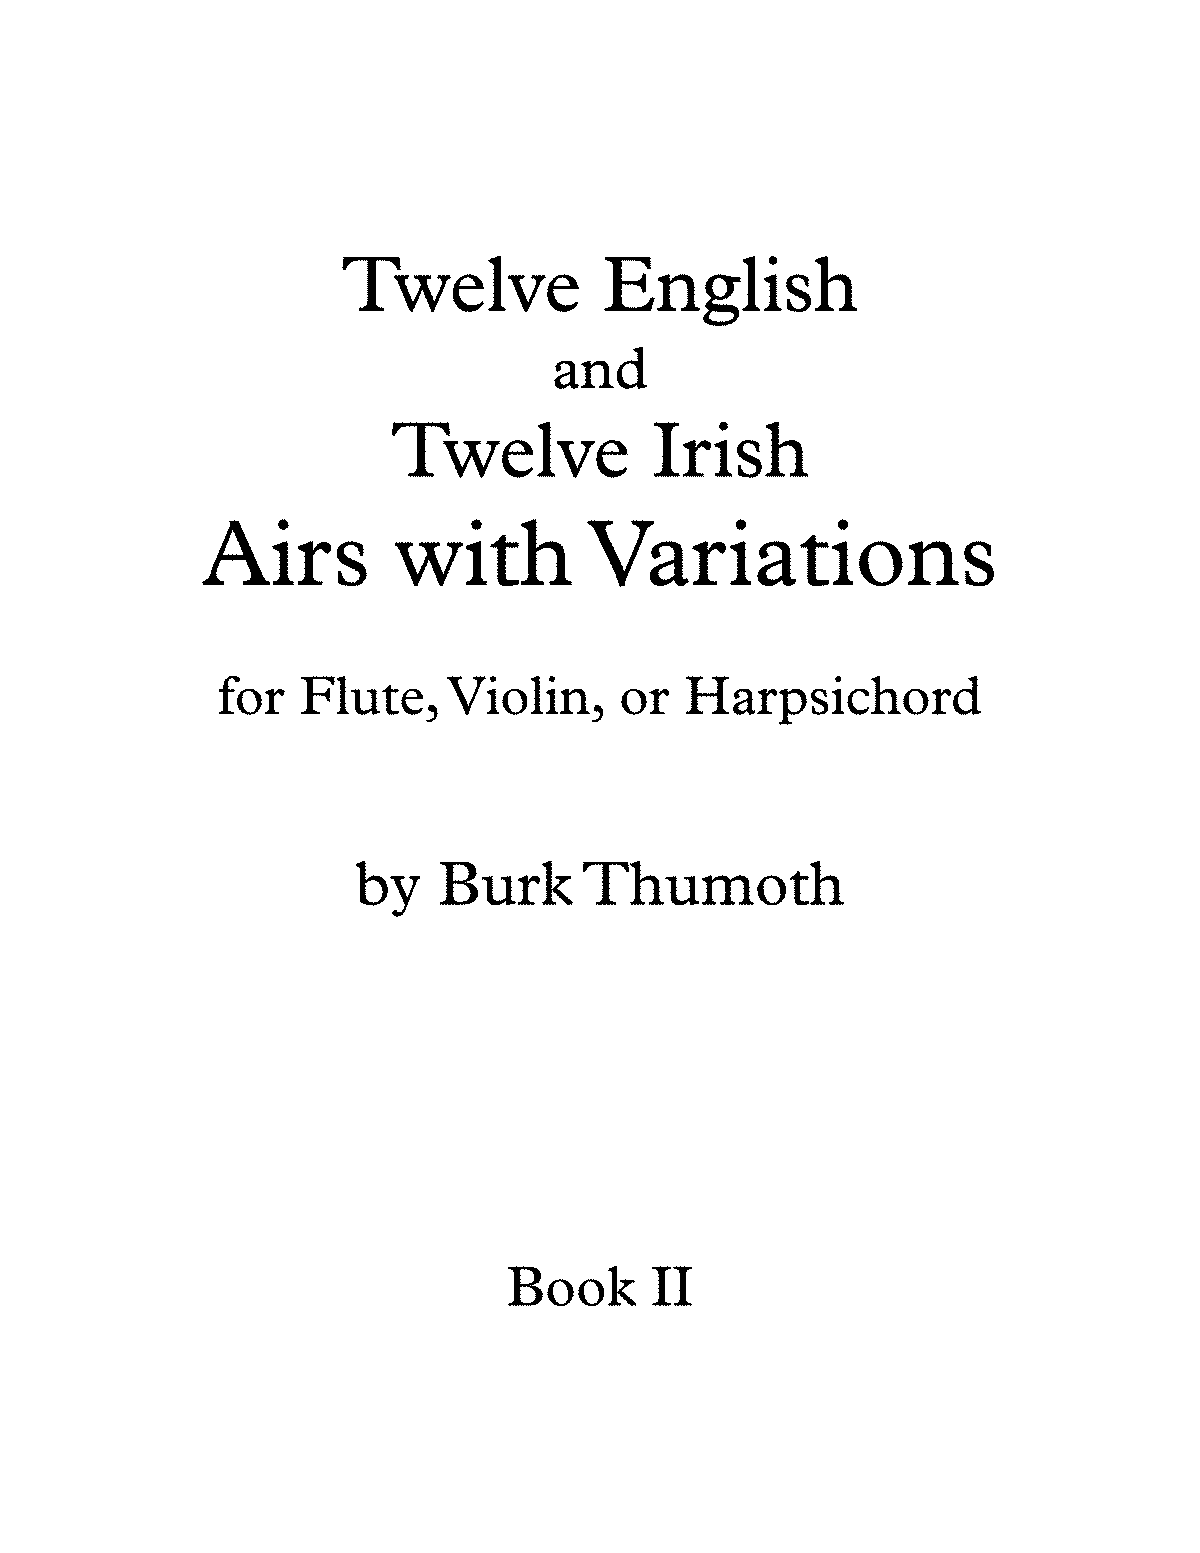 PMLP73042-12 English & Irish Airs - Full Score.pdf